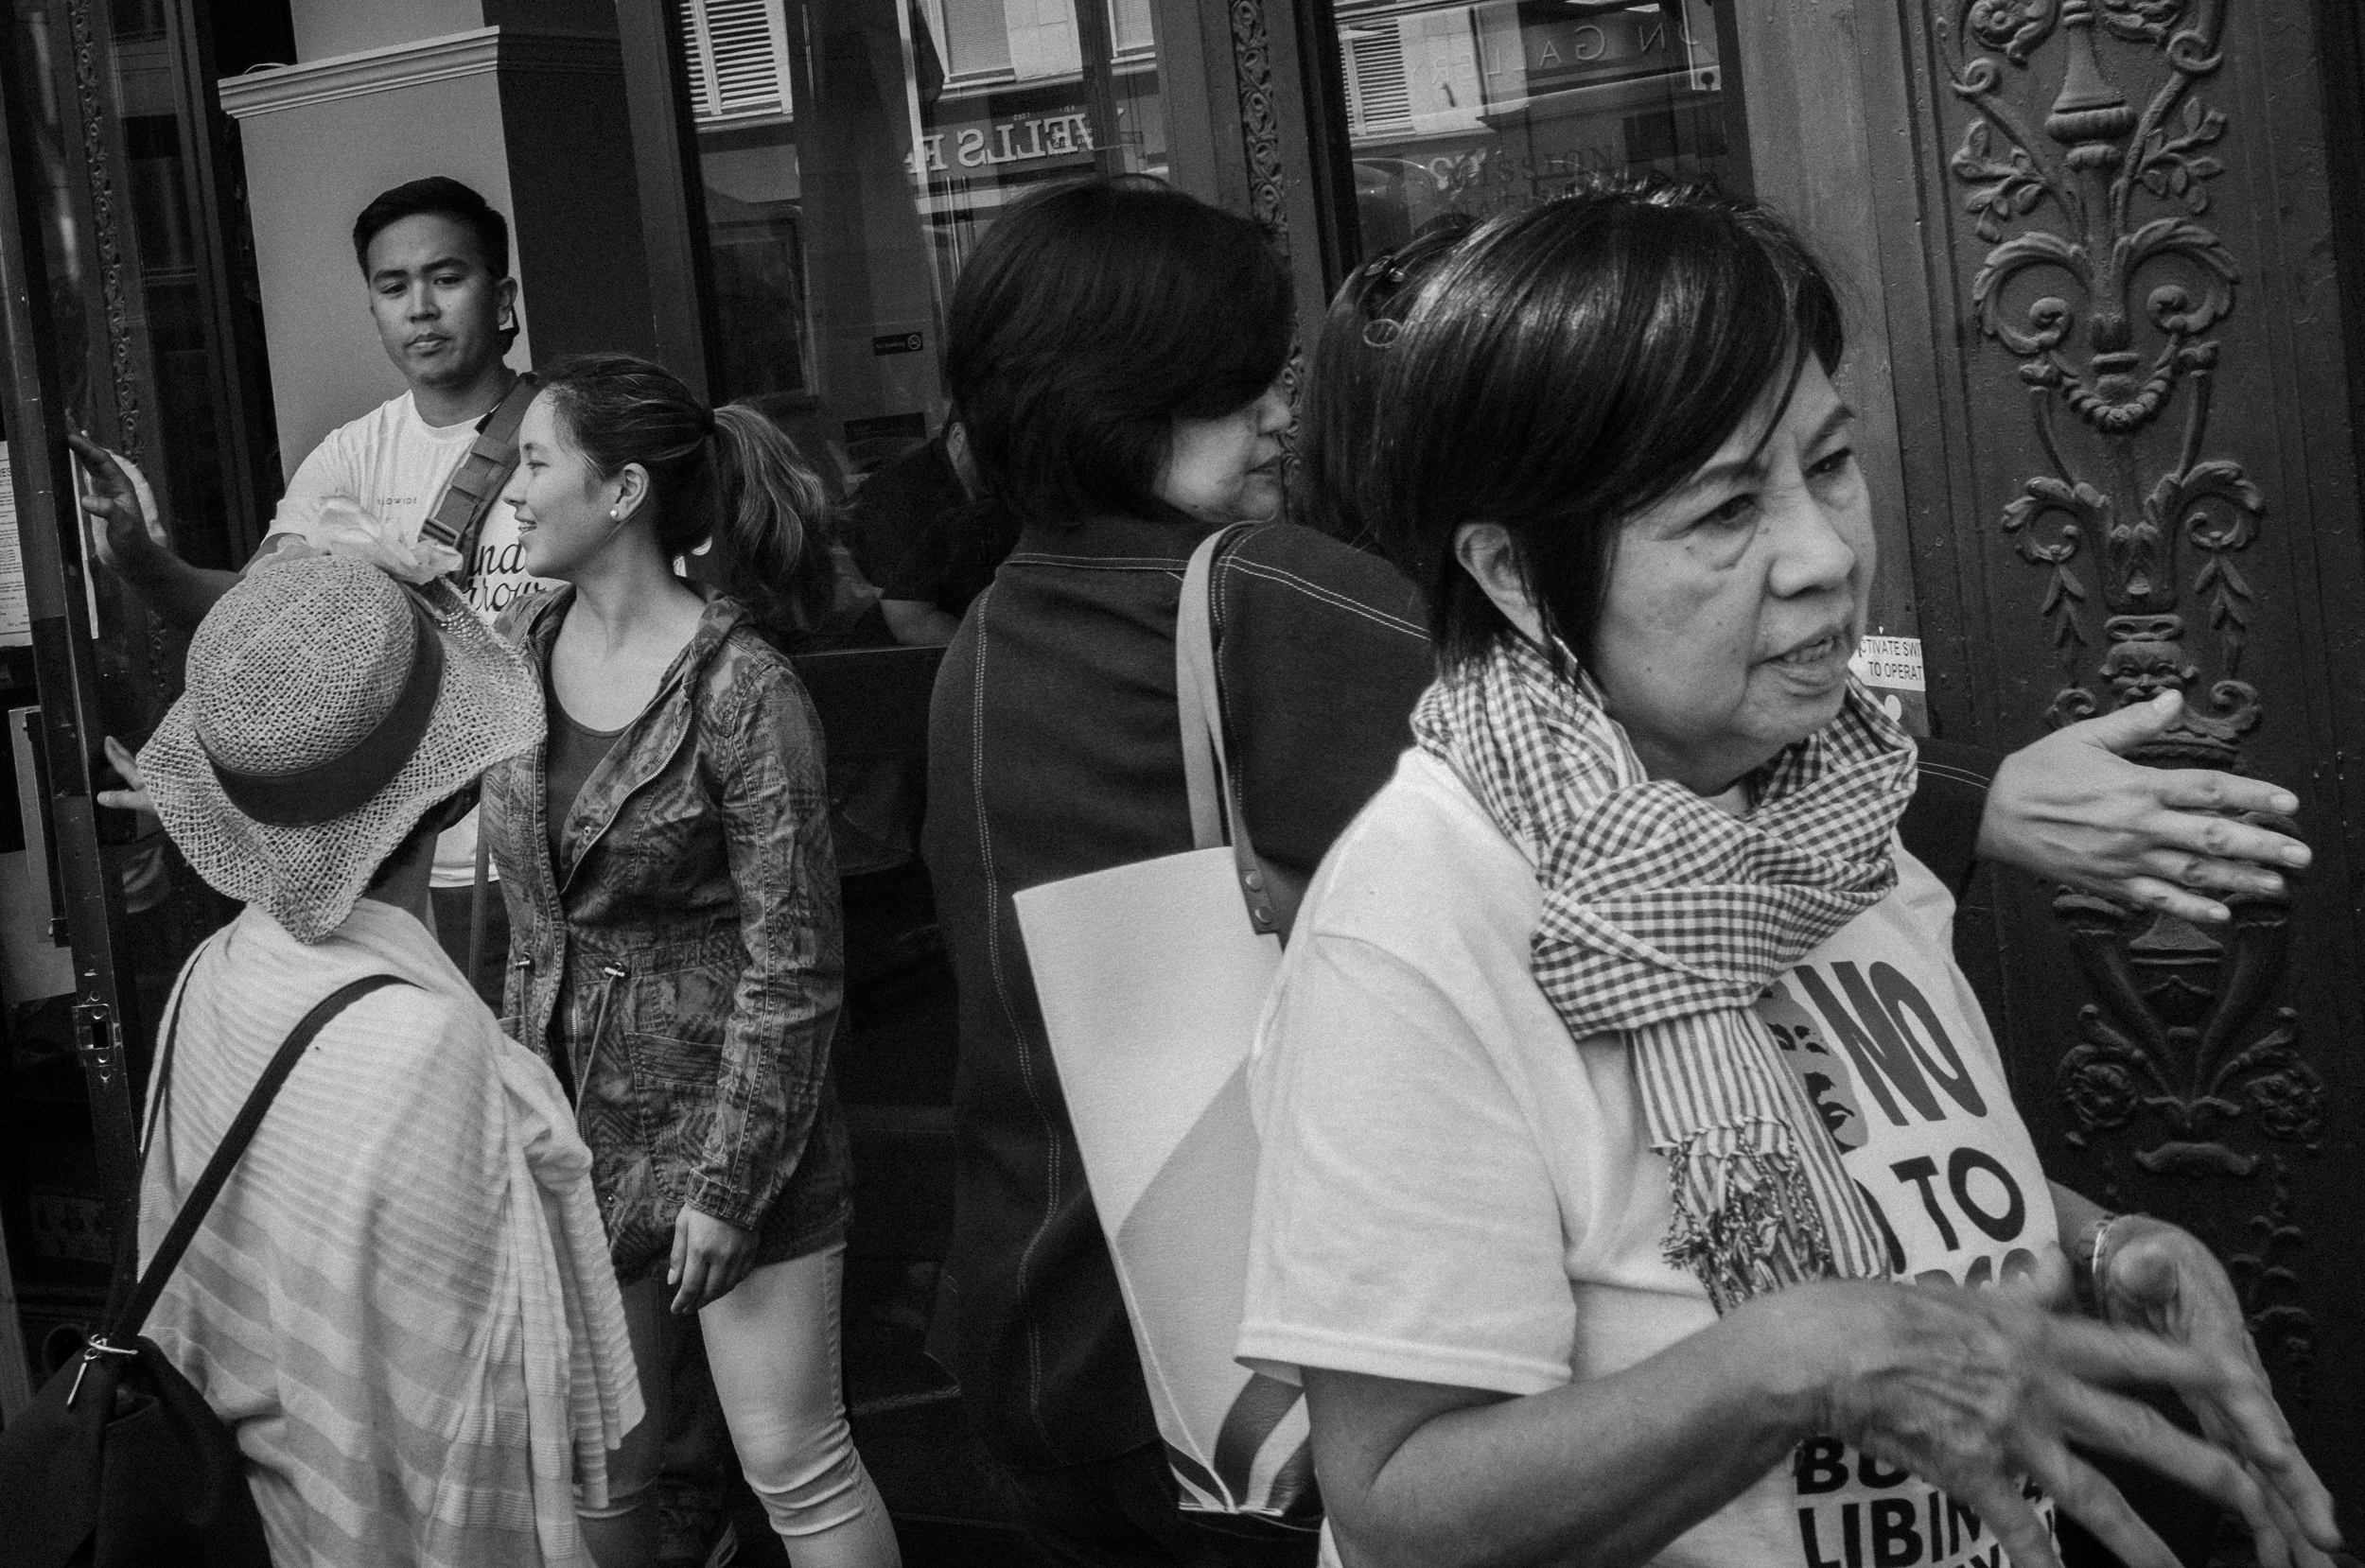 WOMEN VS MARCOS. Mila de Guzman, author of Women Against Marcos: Stories of Filipino and Filipino American Women who Fought a Dictator,€ at the demonstration. Photo by Rick Rocamora